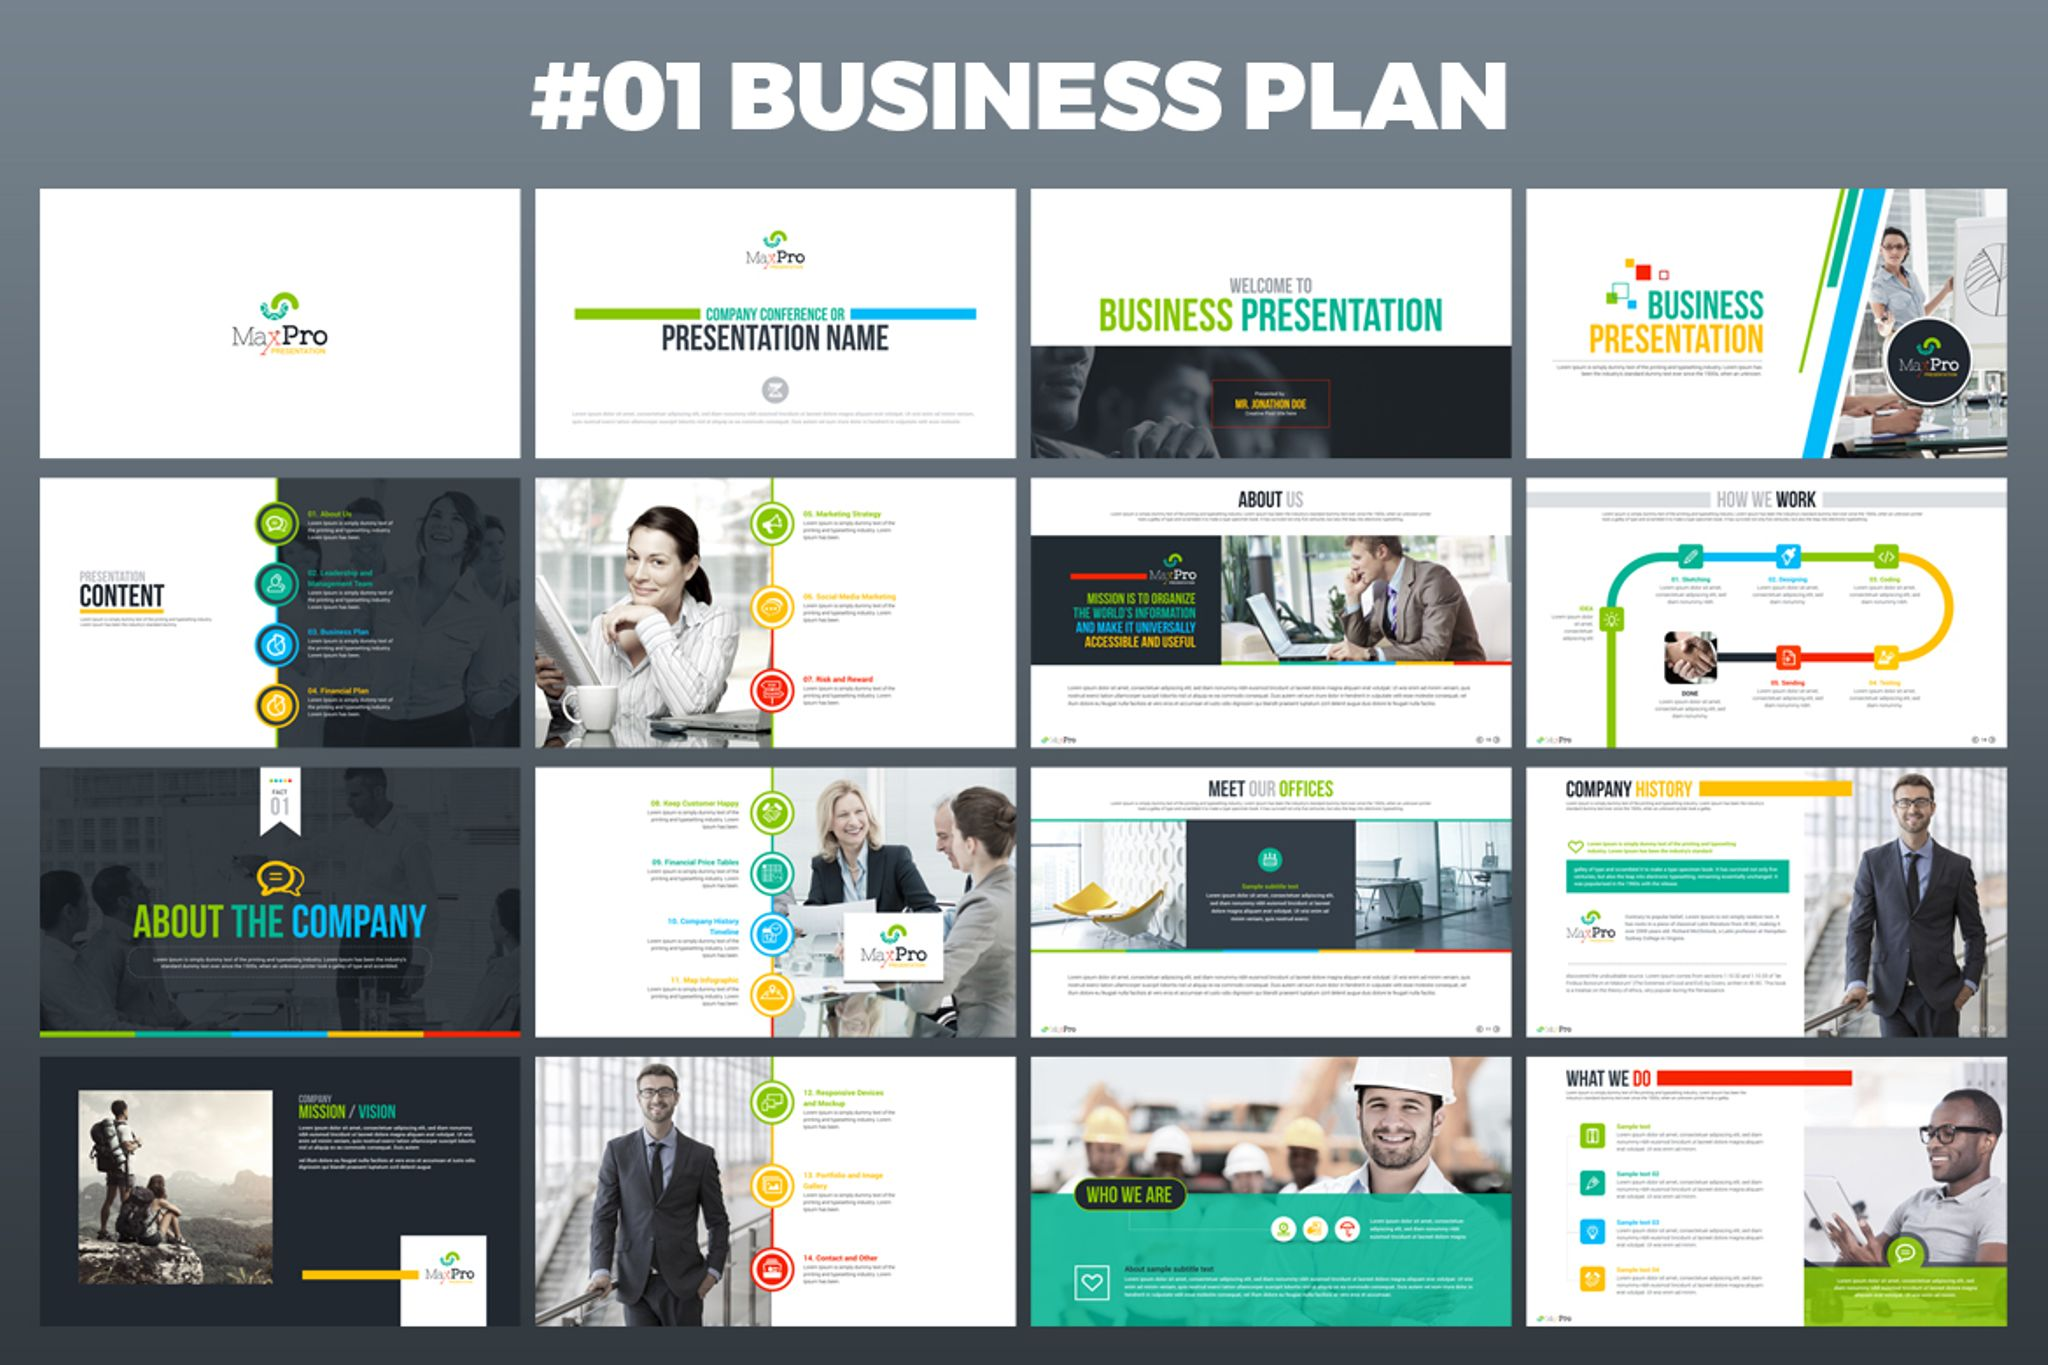 Maxpro business plan powerpoint template 66751 maxpro business plan powerpoint template big screenshot fbccfo Gallery